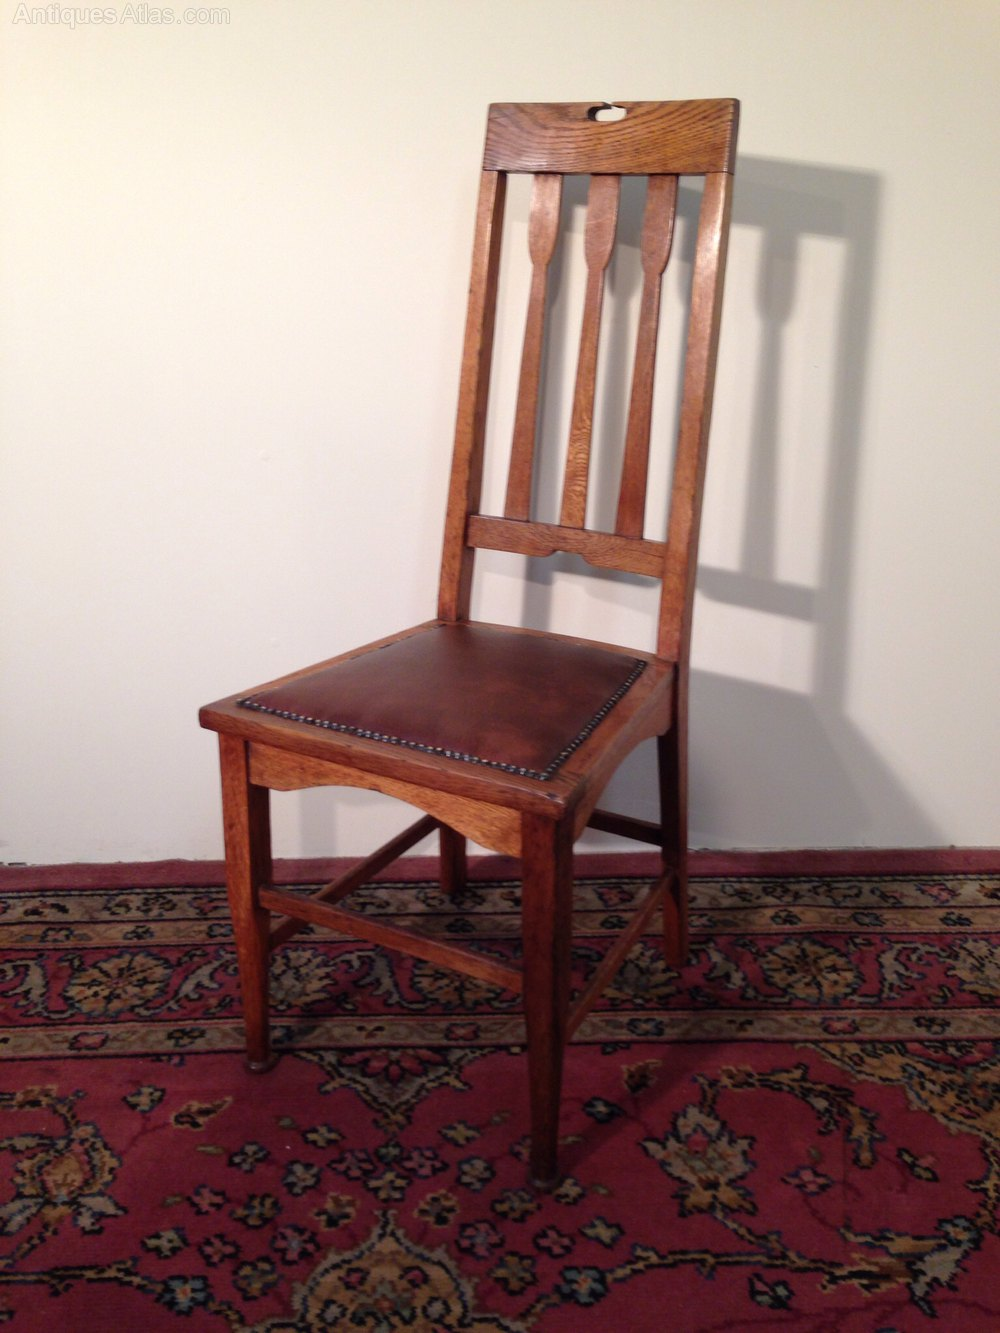 Scottish Arts And Crafts Dining Chairs Antiques Atlas